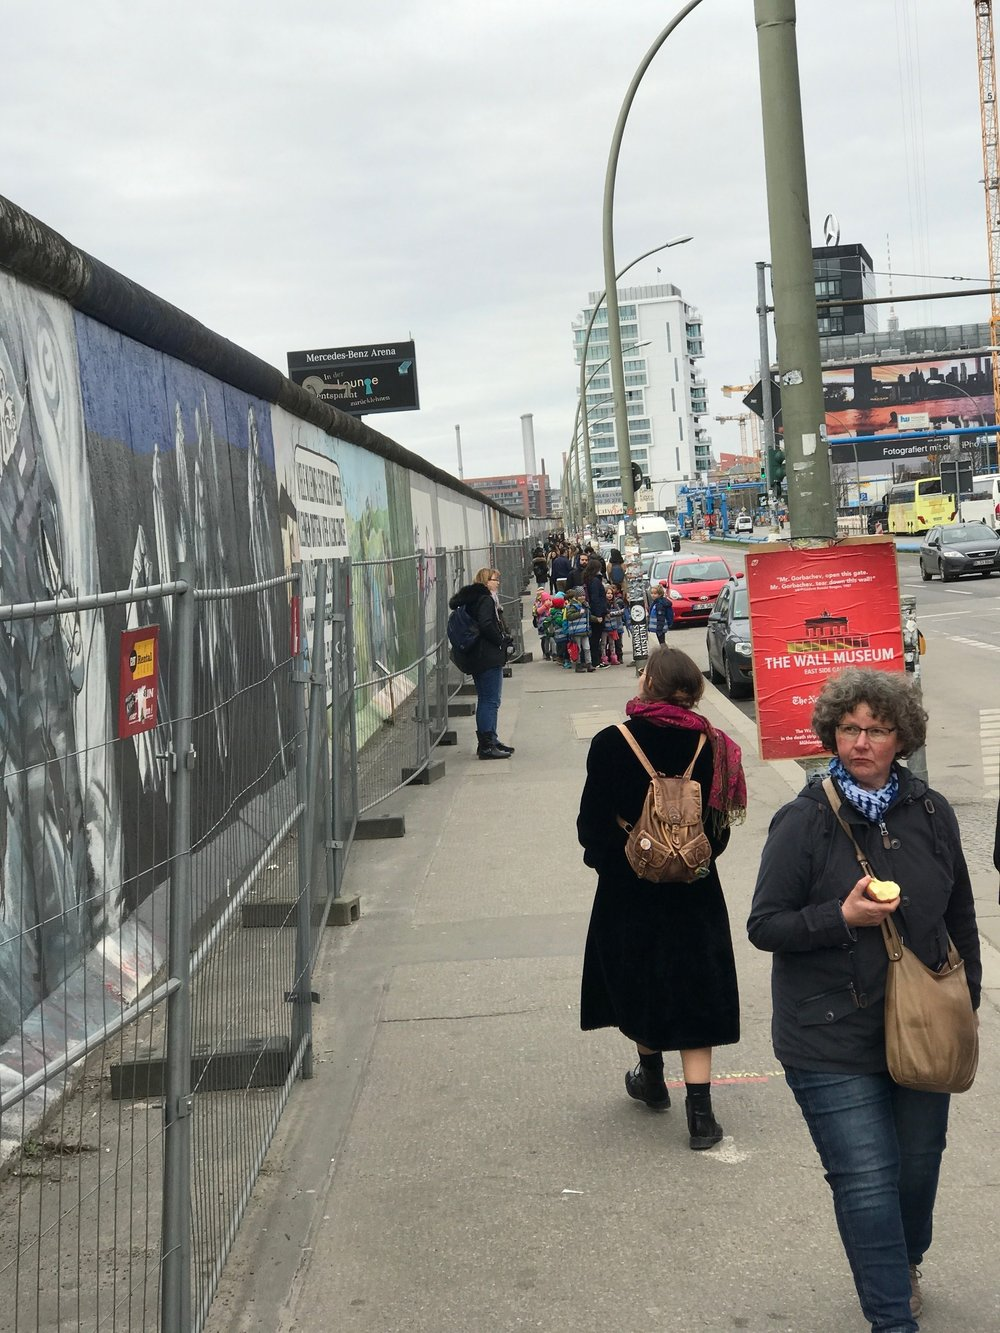 The East Side Gallery gong show of people, clutter, construction and fences is not a great experience - IMHO!.